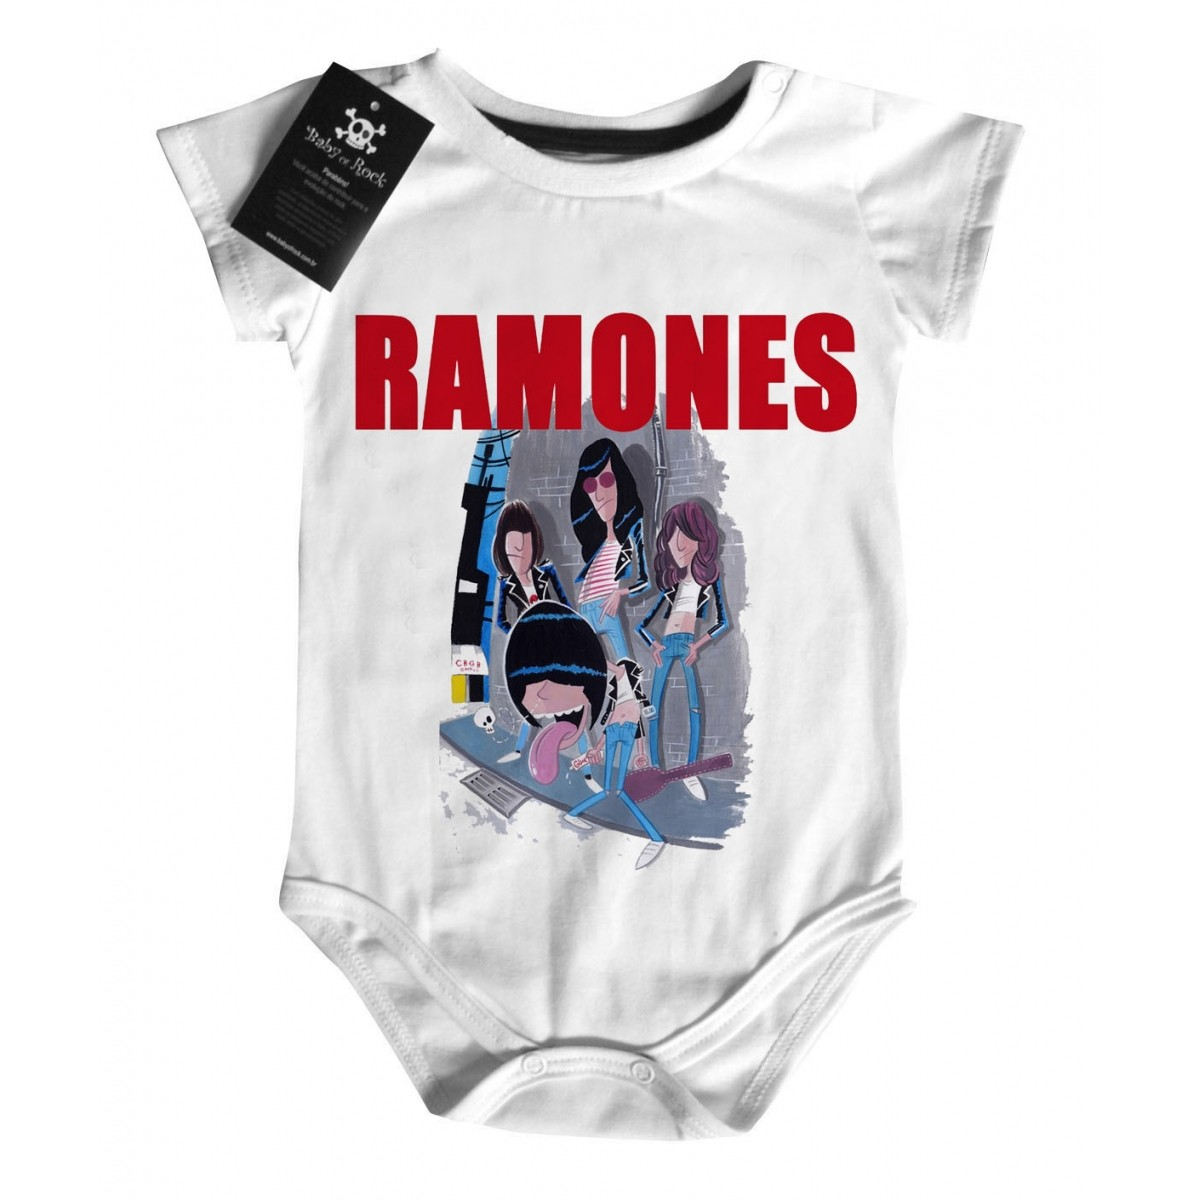 Body de Rock para Bebê do RAMONES - Caricature  White  - Baby Monster S/A